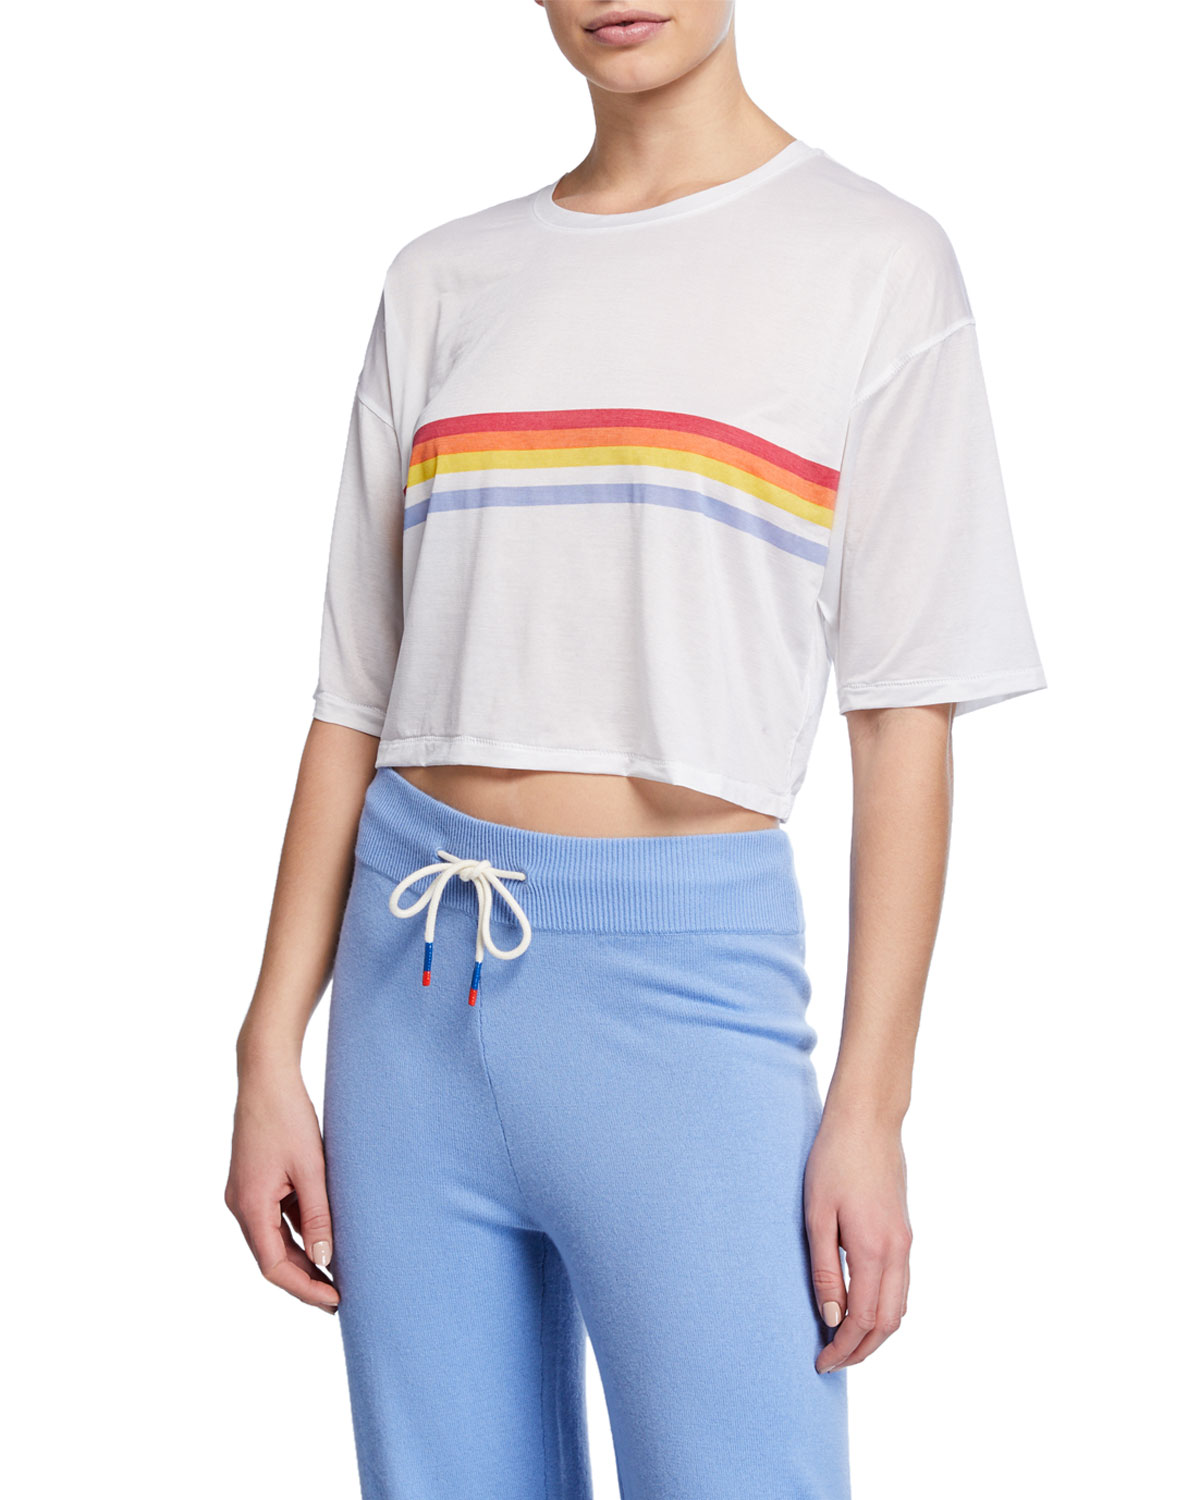 Spiritual Gangster Retro Active Sessions Striped Cropped Tee